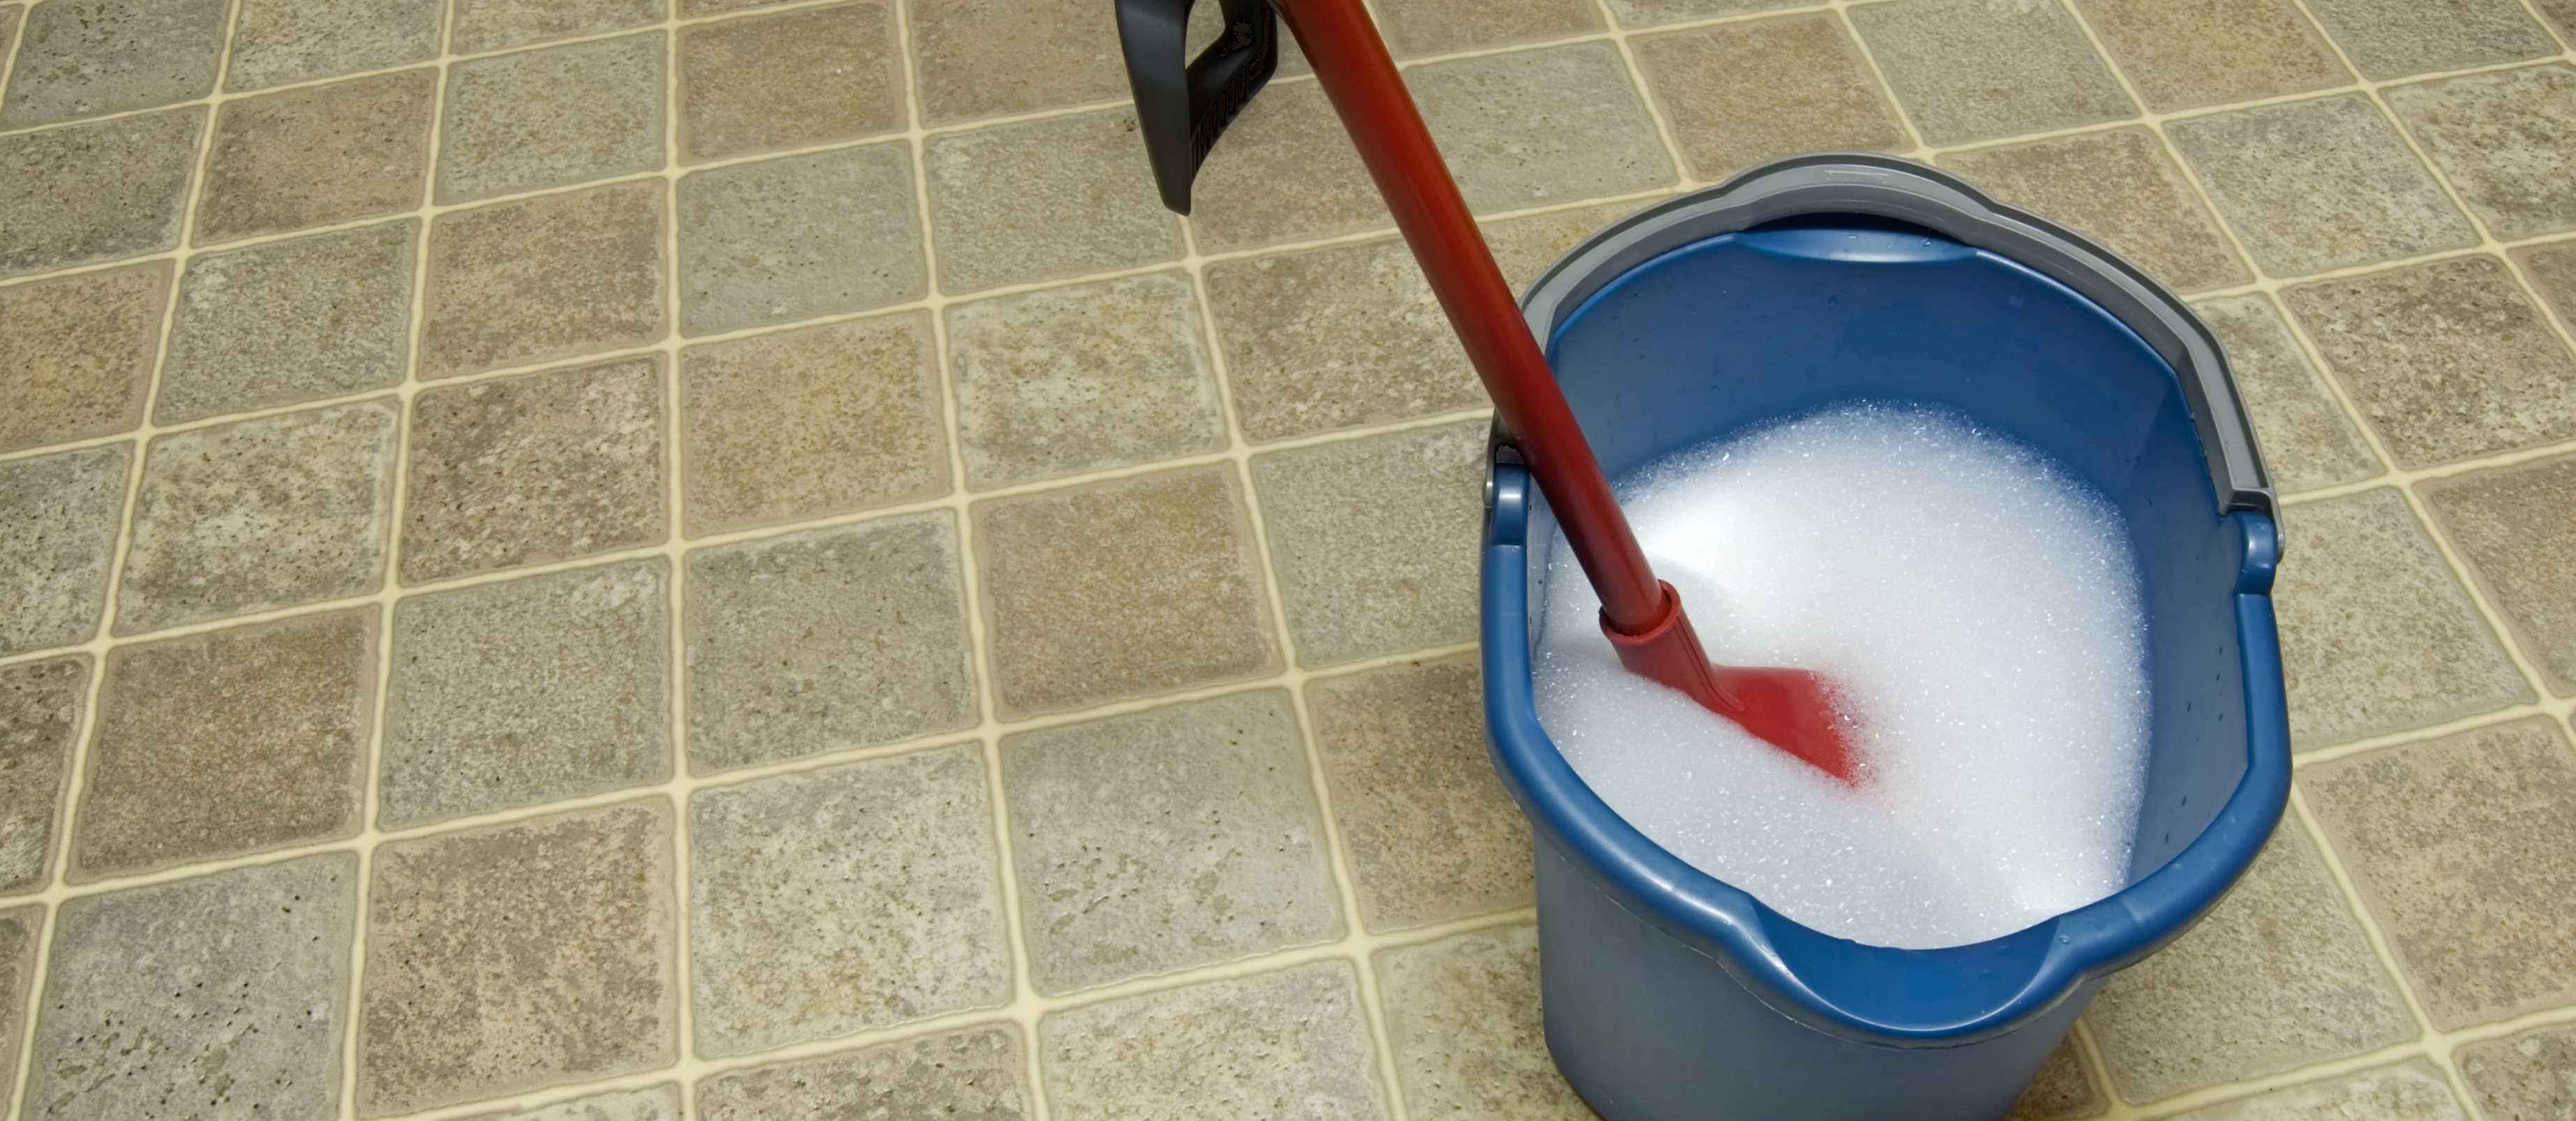 How To Clean Vinyl Floors Bathroom